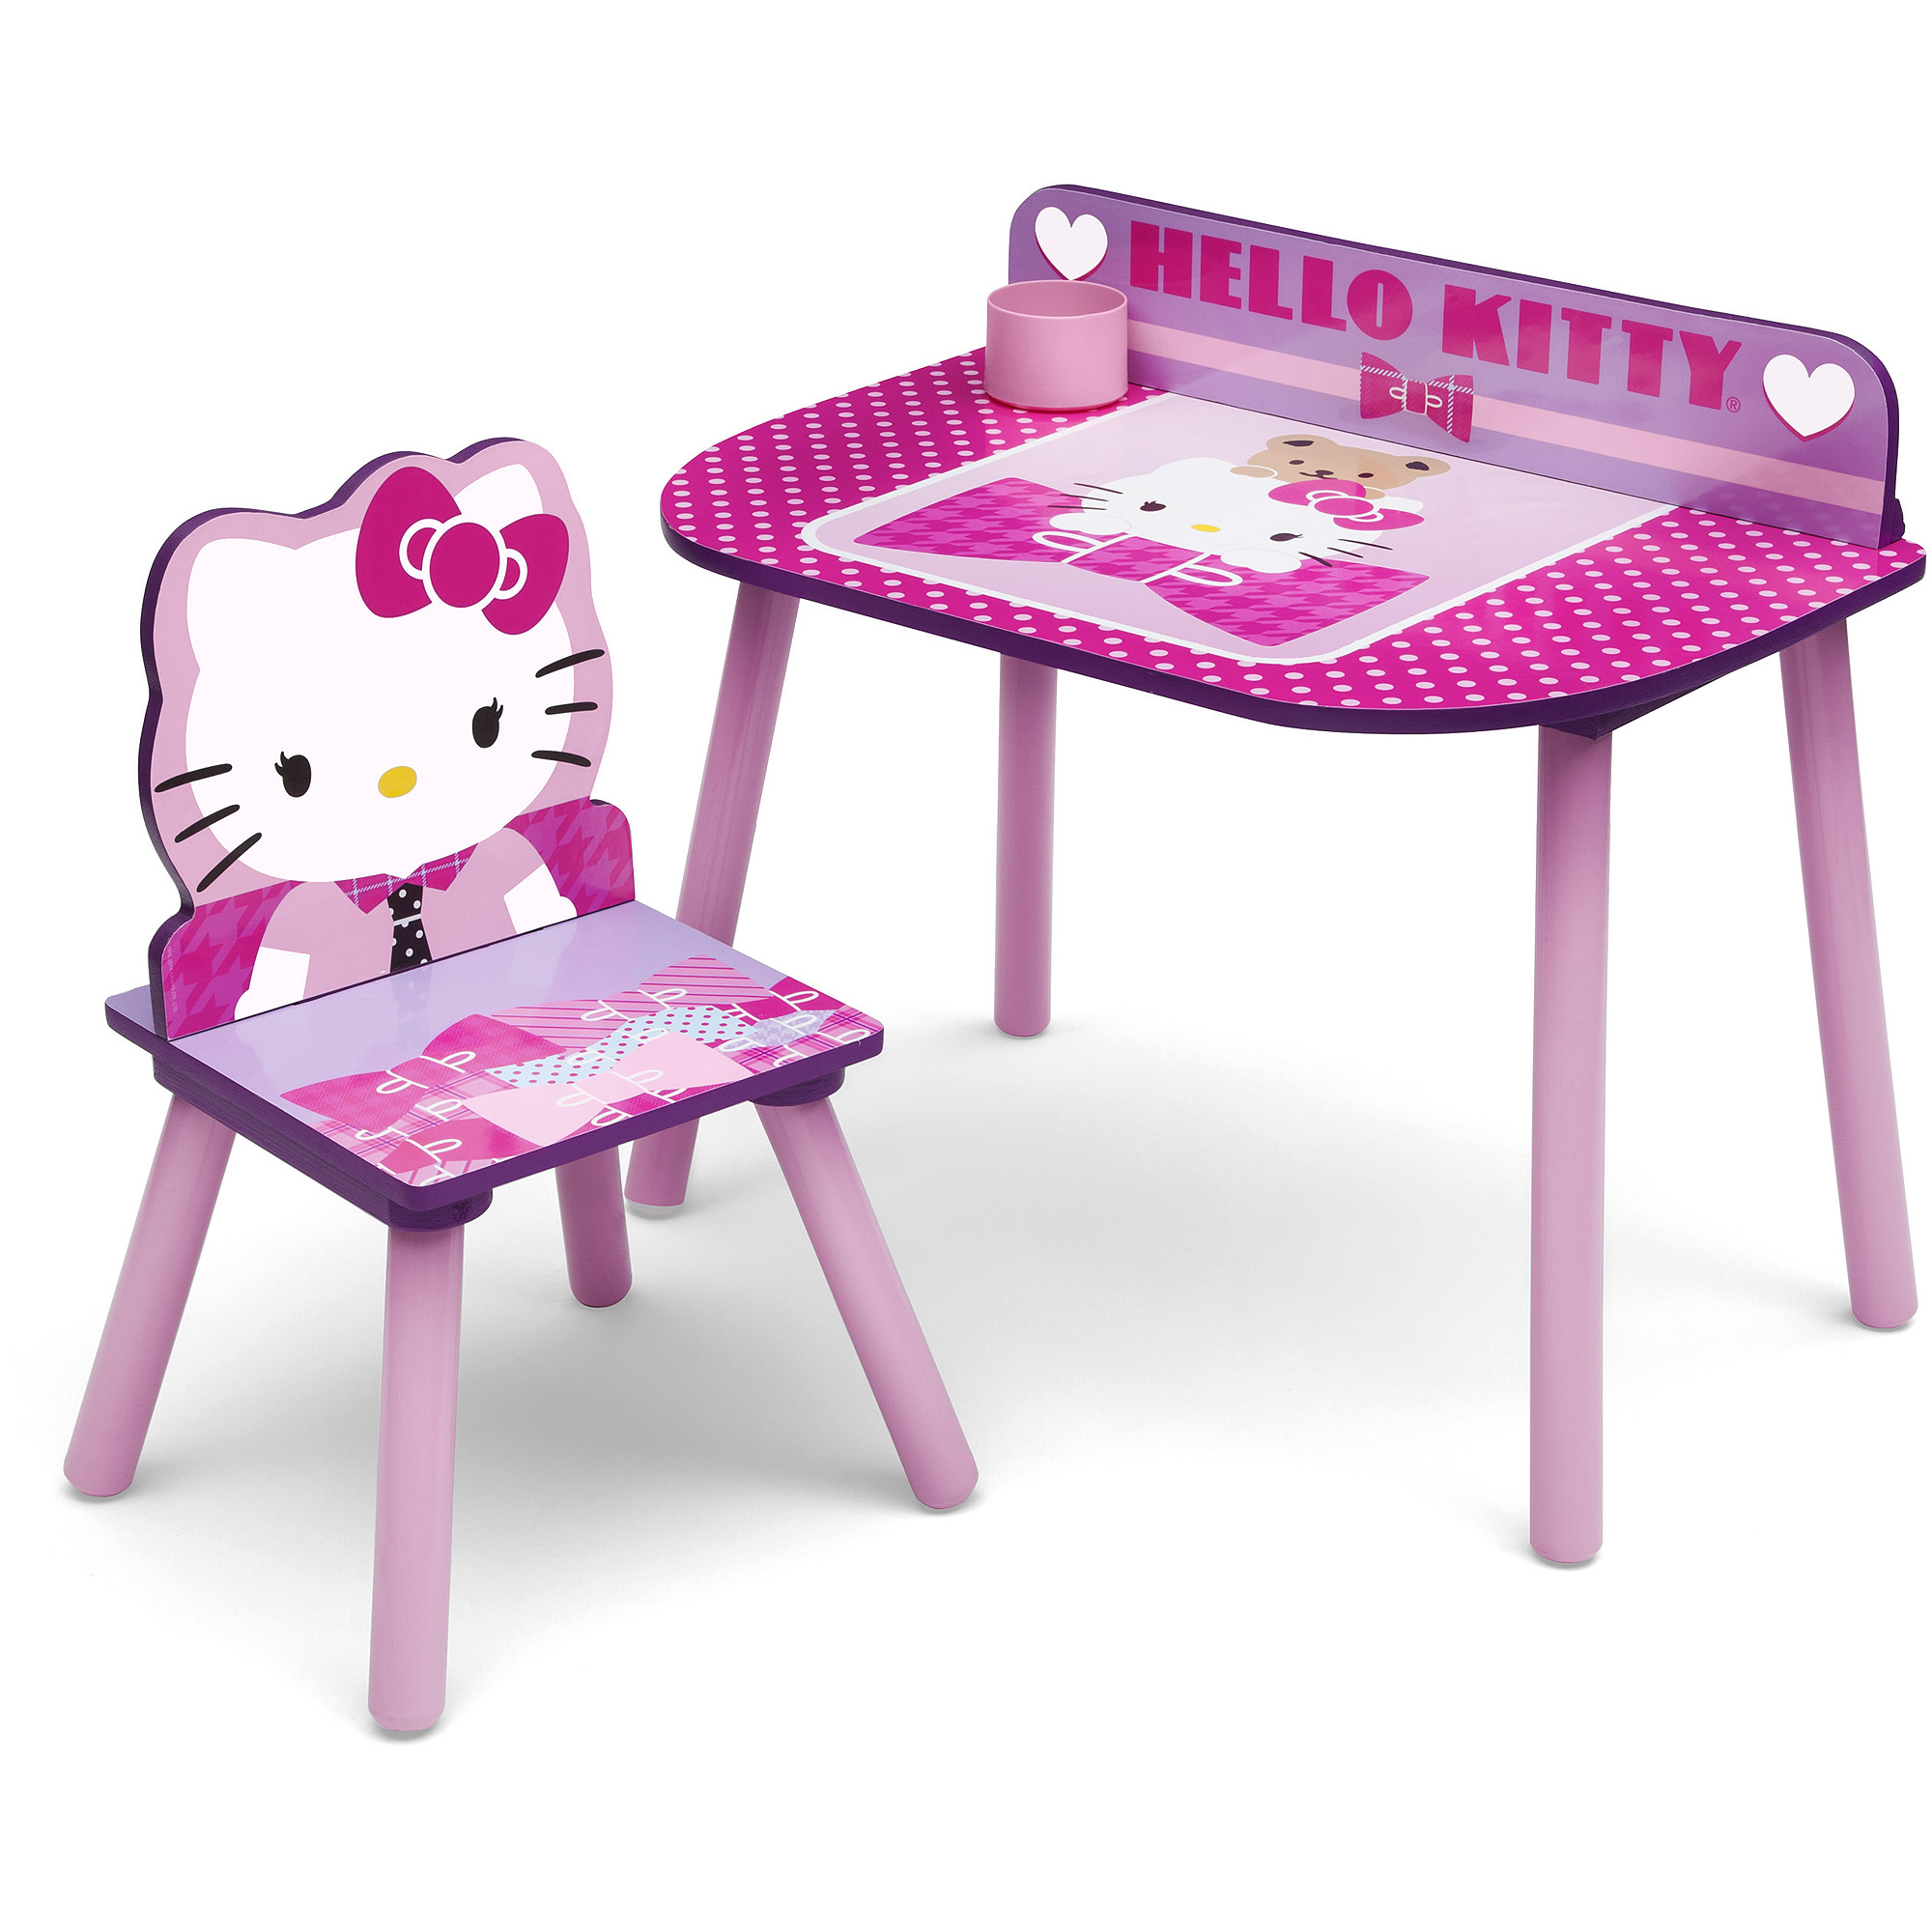 Hello Kitty Desk and Chair Set